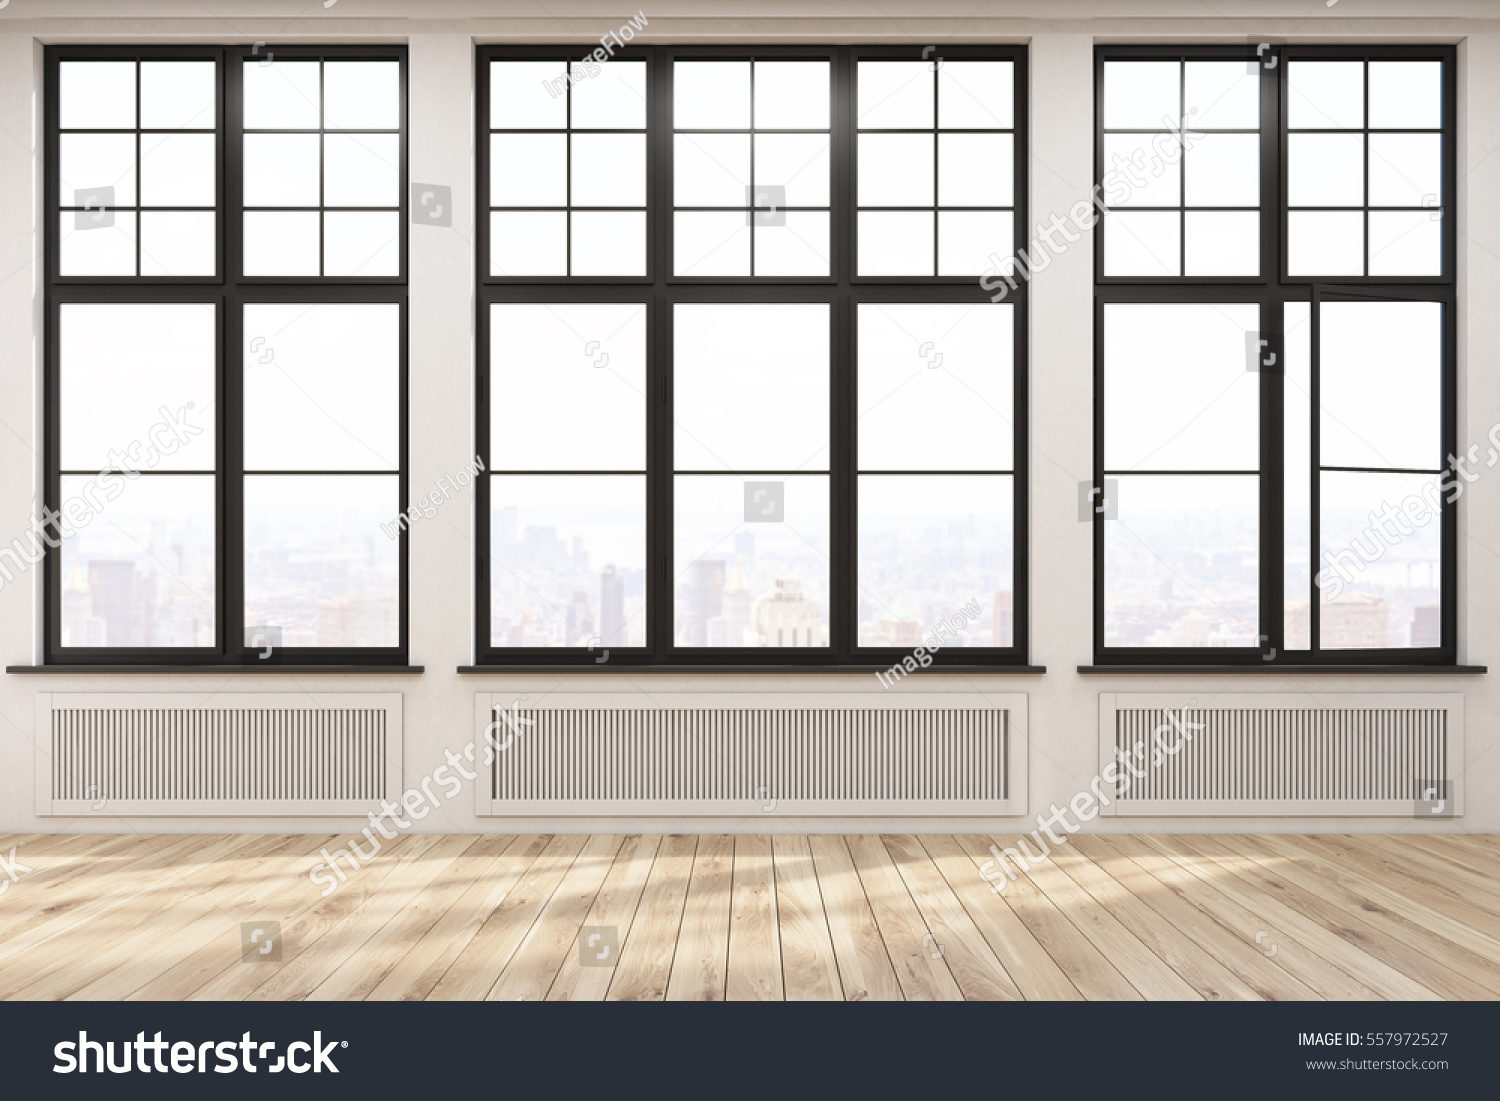 Empty living room with large windows can be as background stock - Empty Room With Three Large Windows In A Beige Wall Wooden Floor Heating